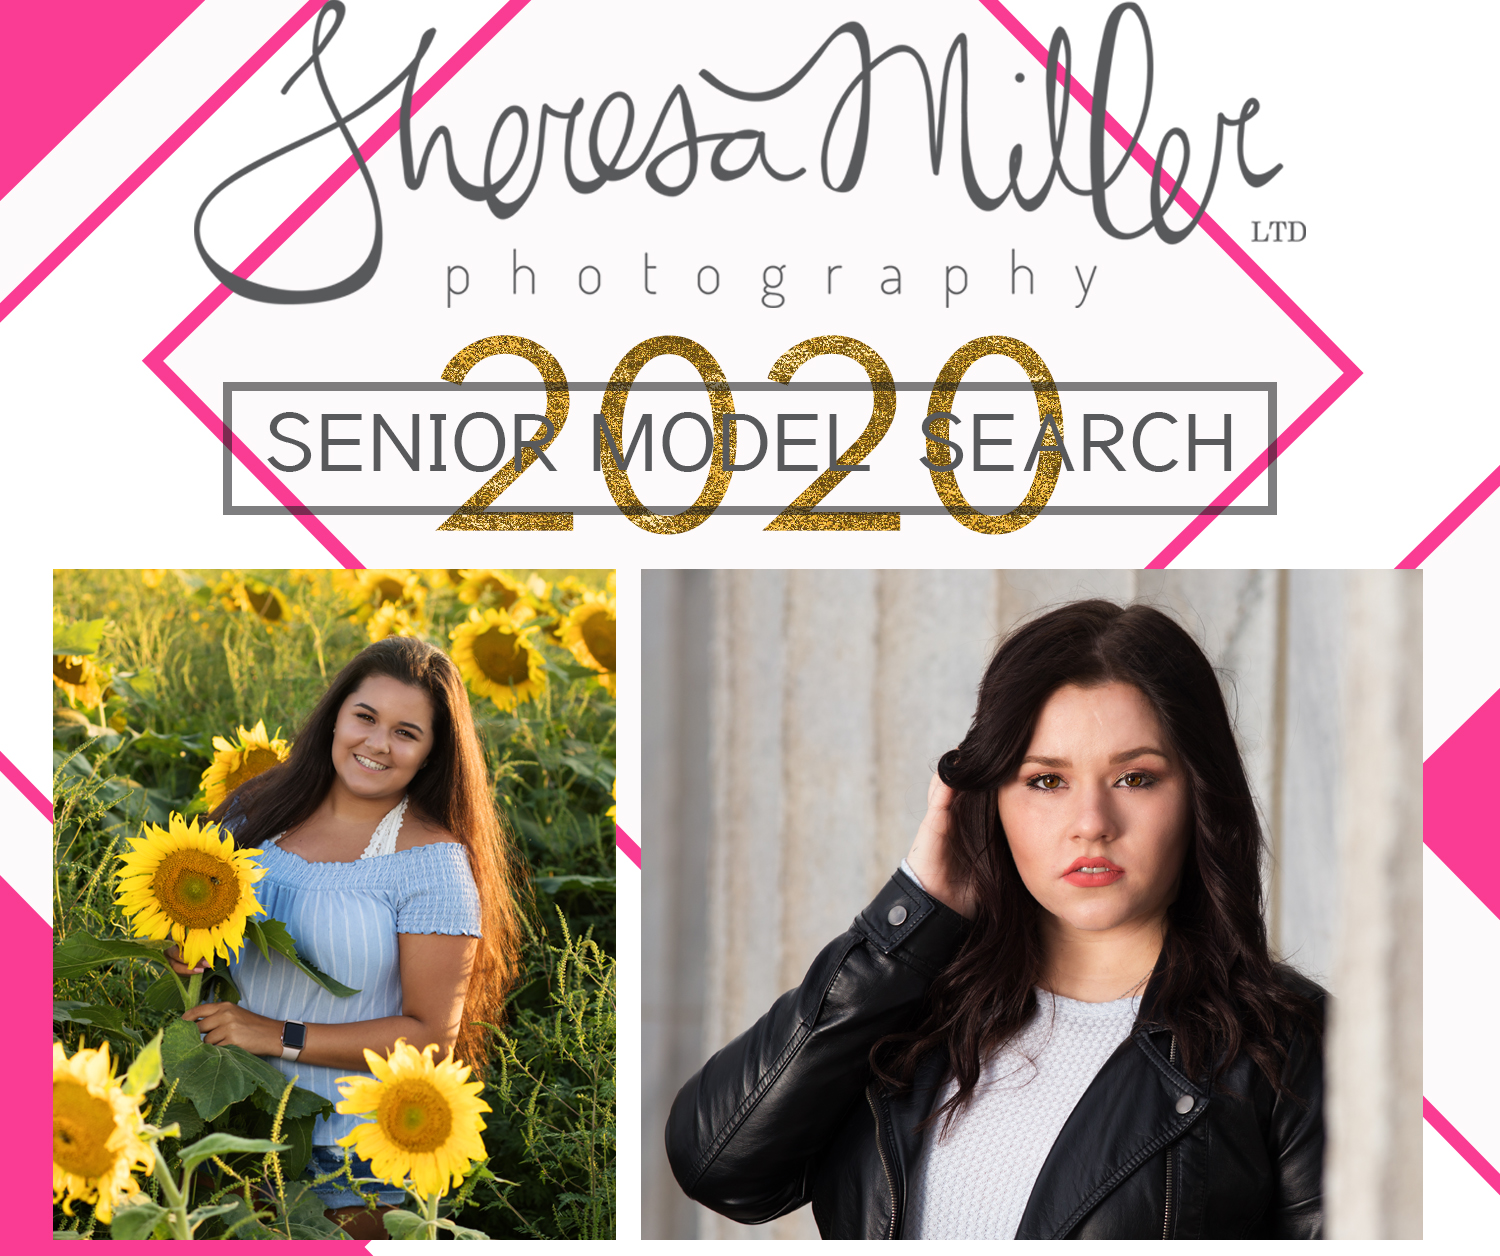 Class of 2020 Senior Model Search